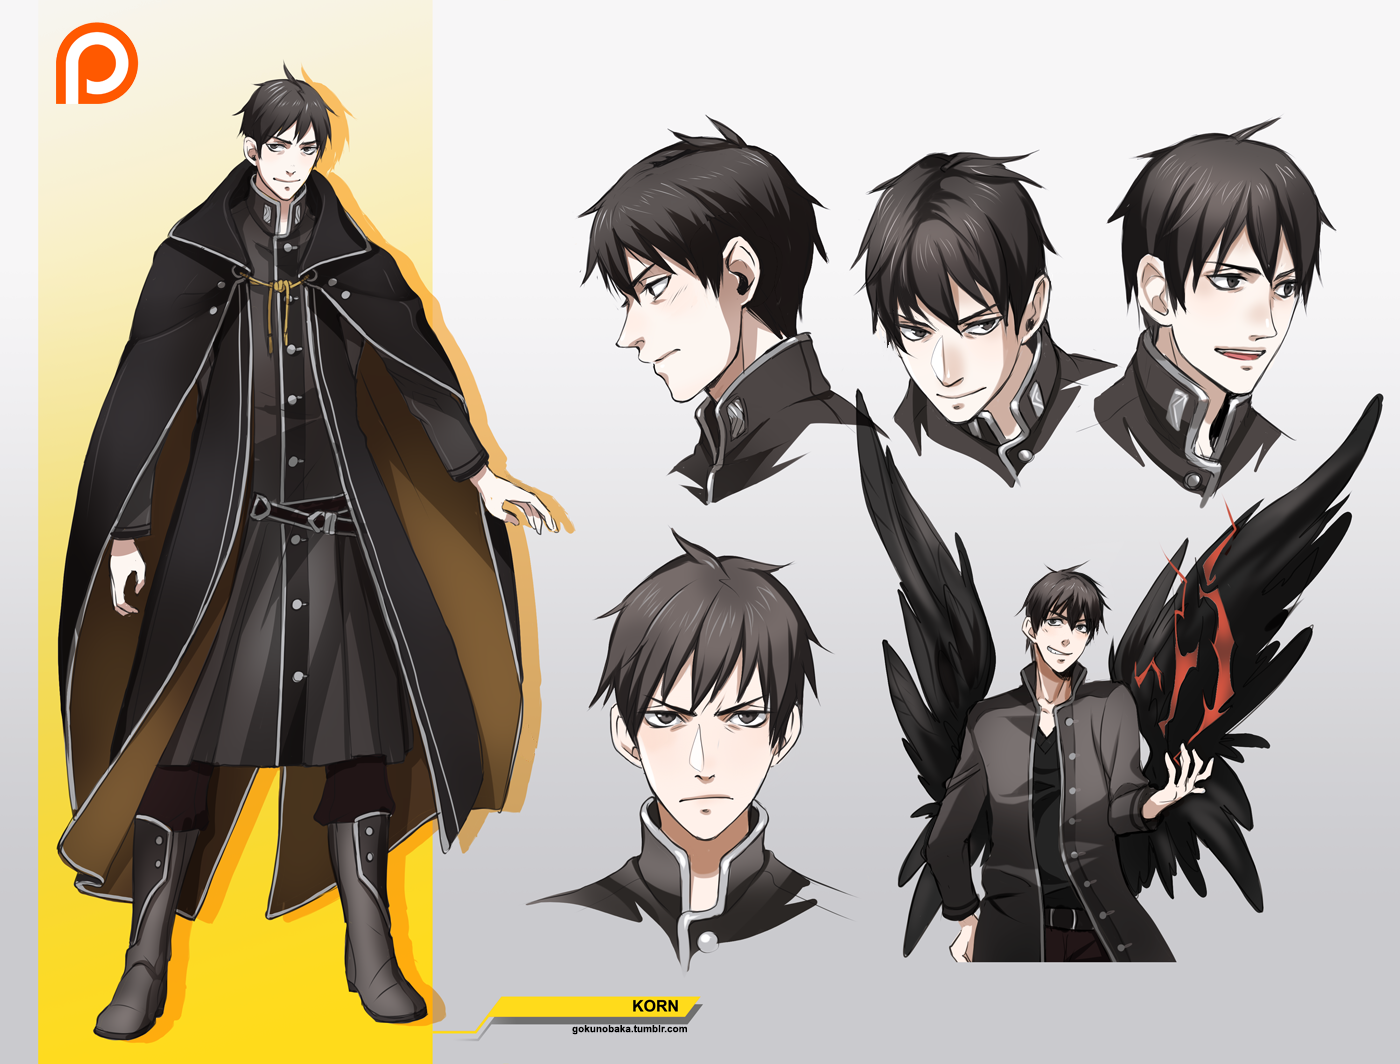 Coolest Anime Character Design : Korn character design by goku no baka on deviantart